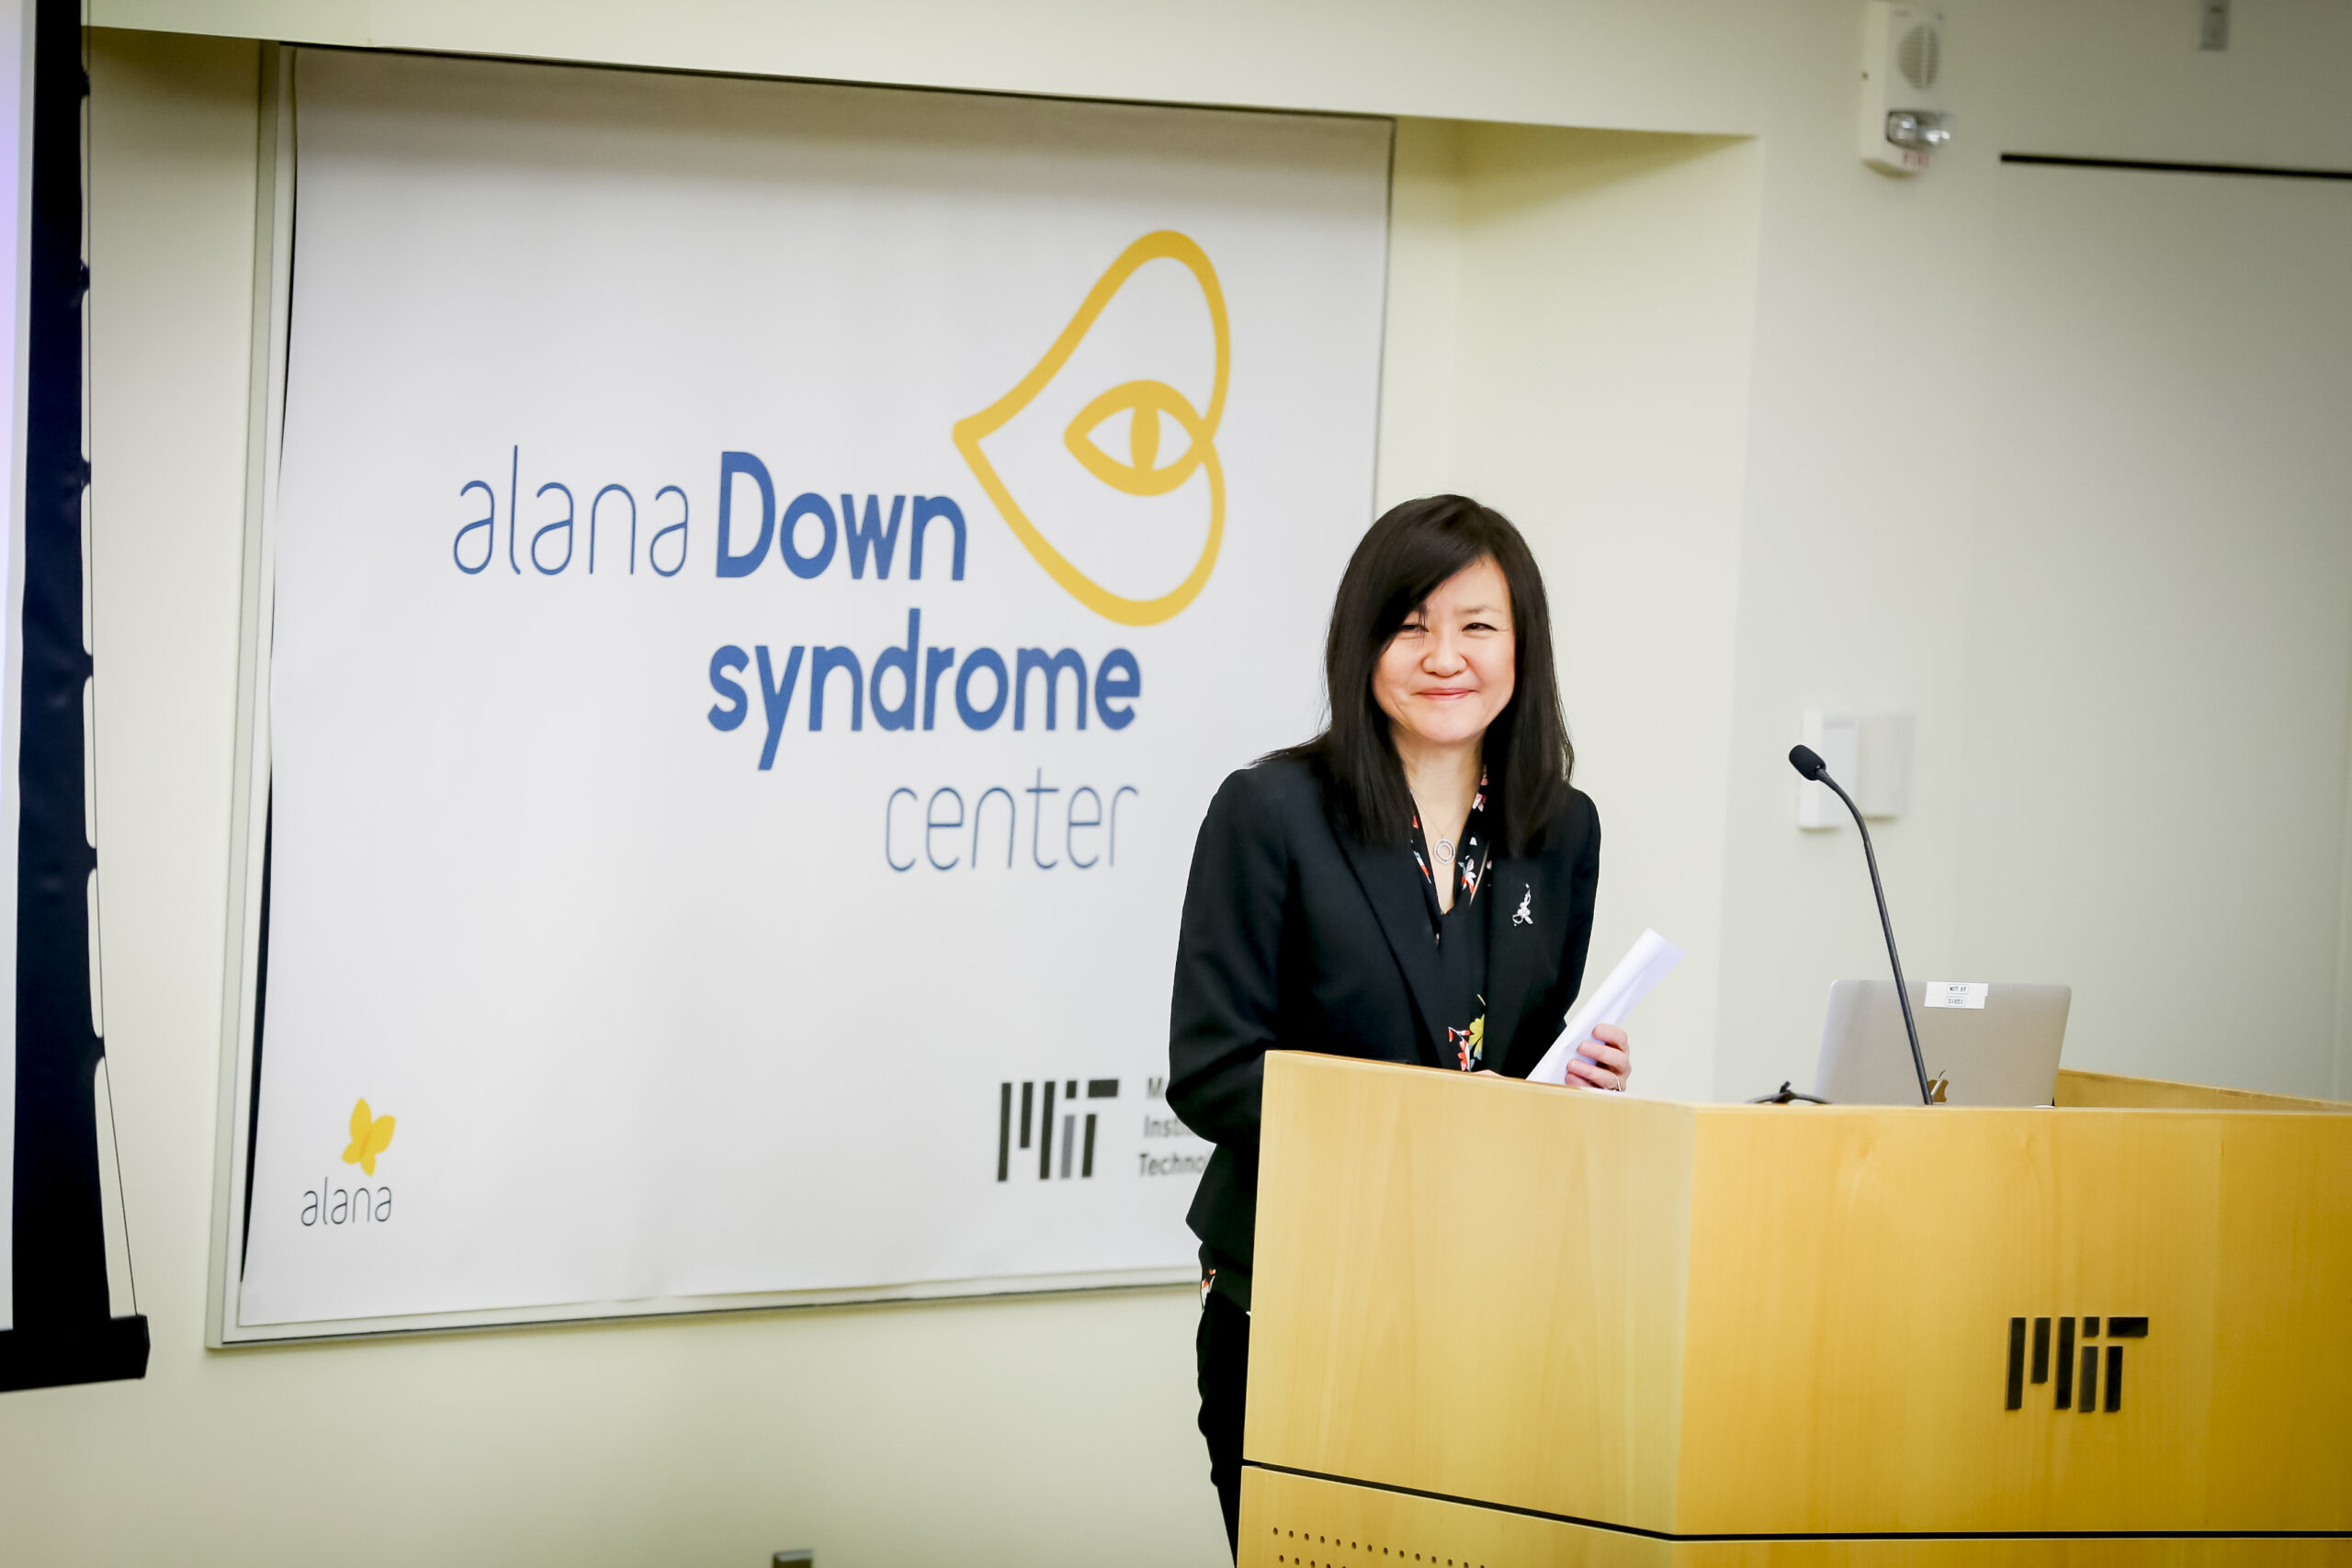 Li-Huei Tsai stands at an MIT podium with the Alana Center logo in the background